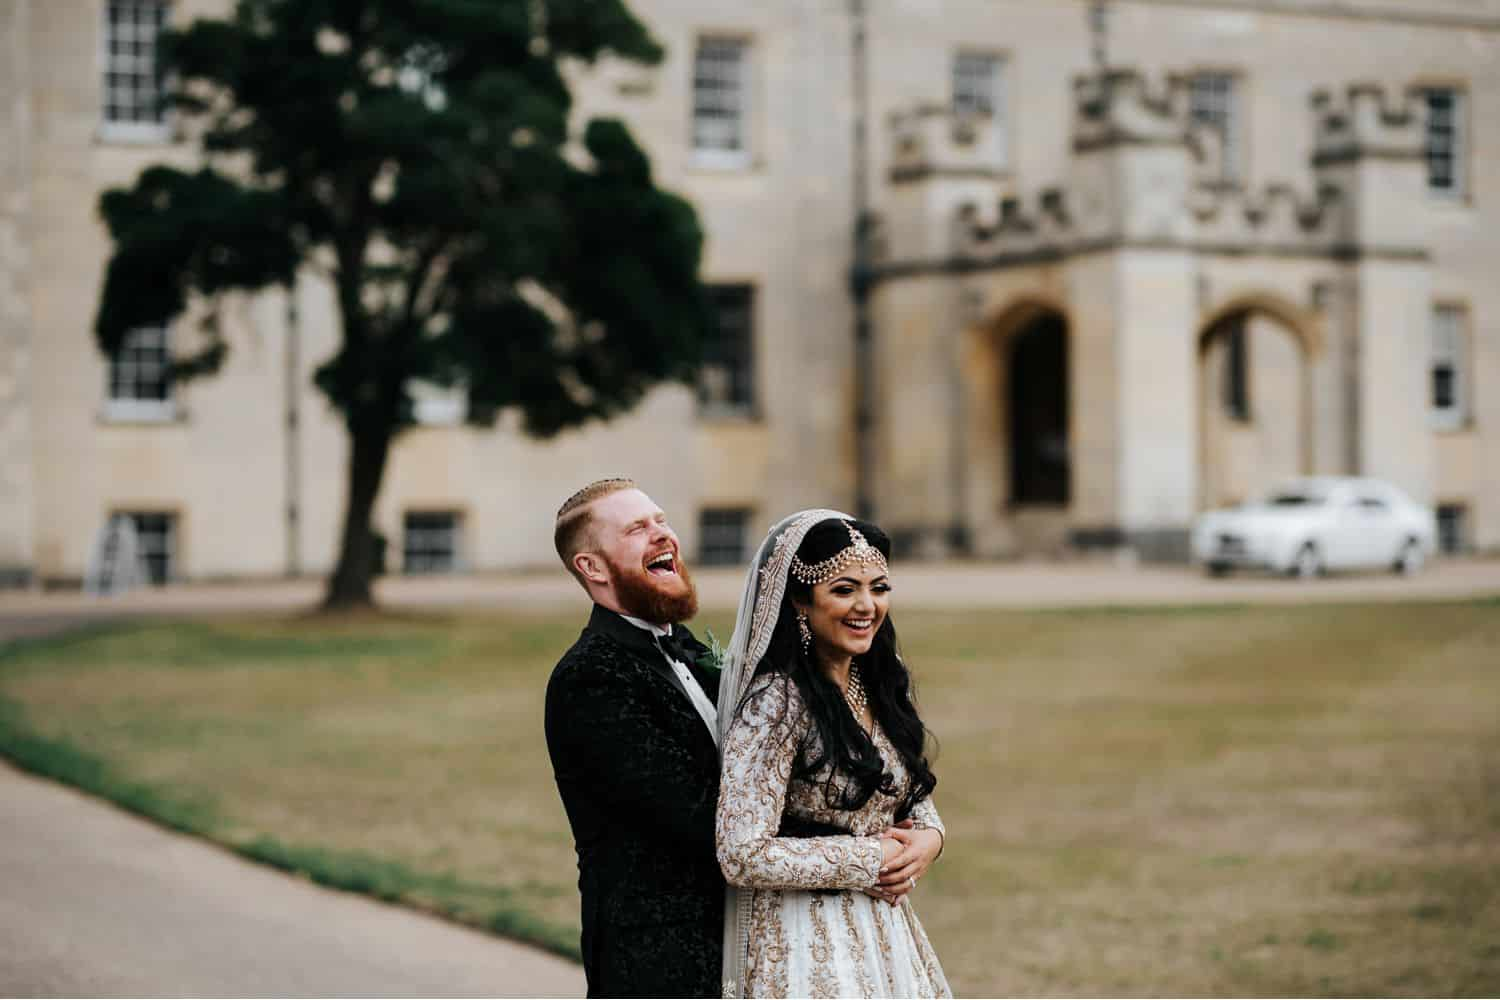 Wedding Print Packages: Bearded groom stands behind bride dressed in traditional Indian wedding attire. A castle is in the background.